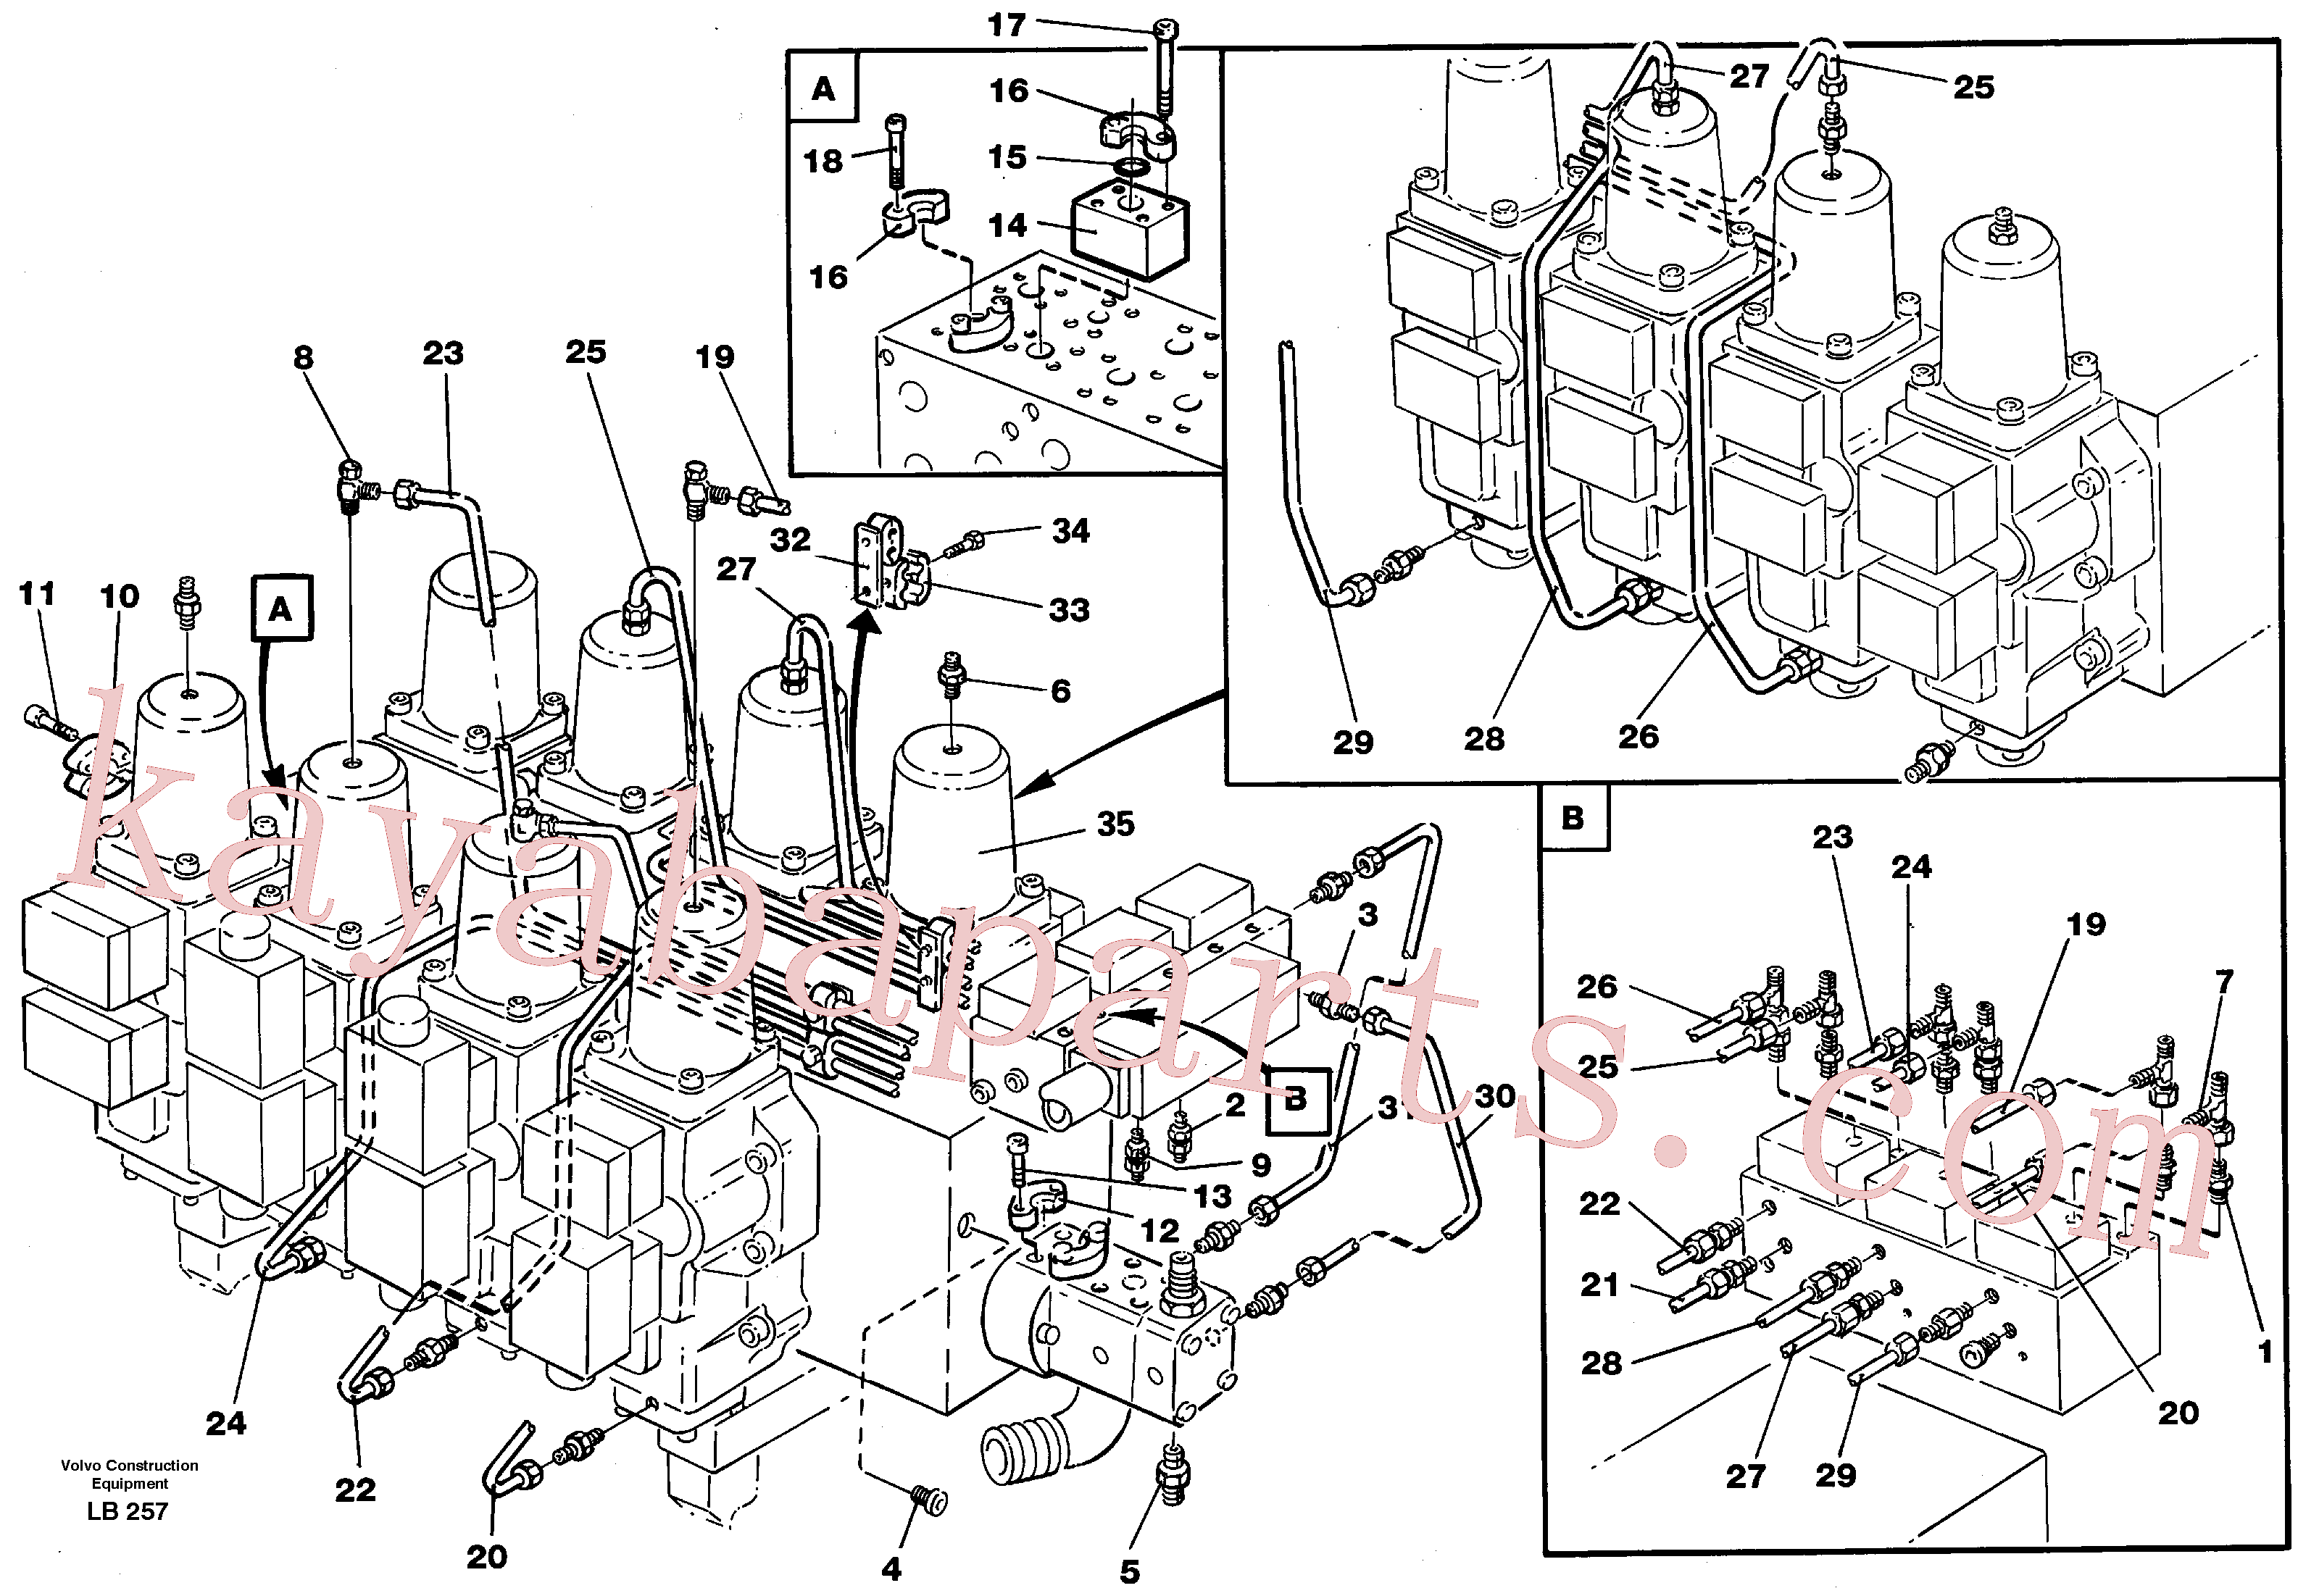 VOE14261306 for Volvo Main valve assembly, tubes connections(LB257 assembly)